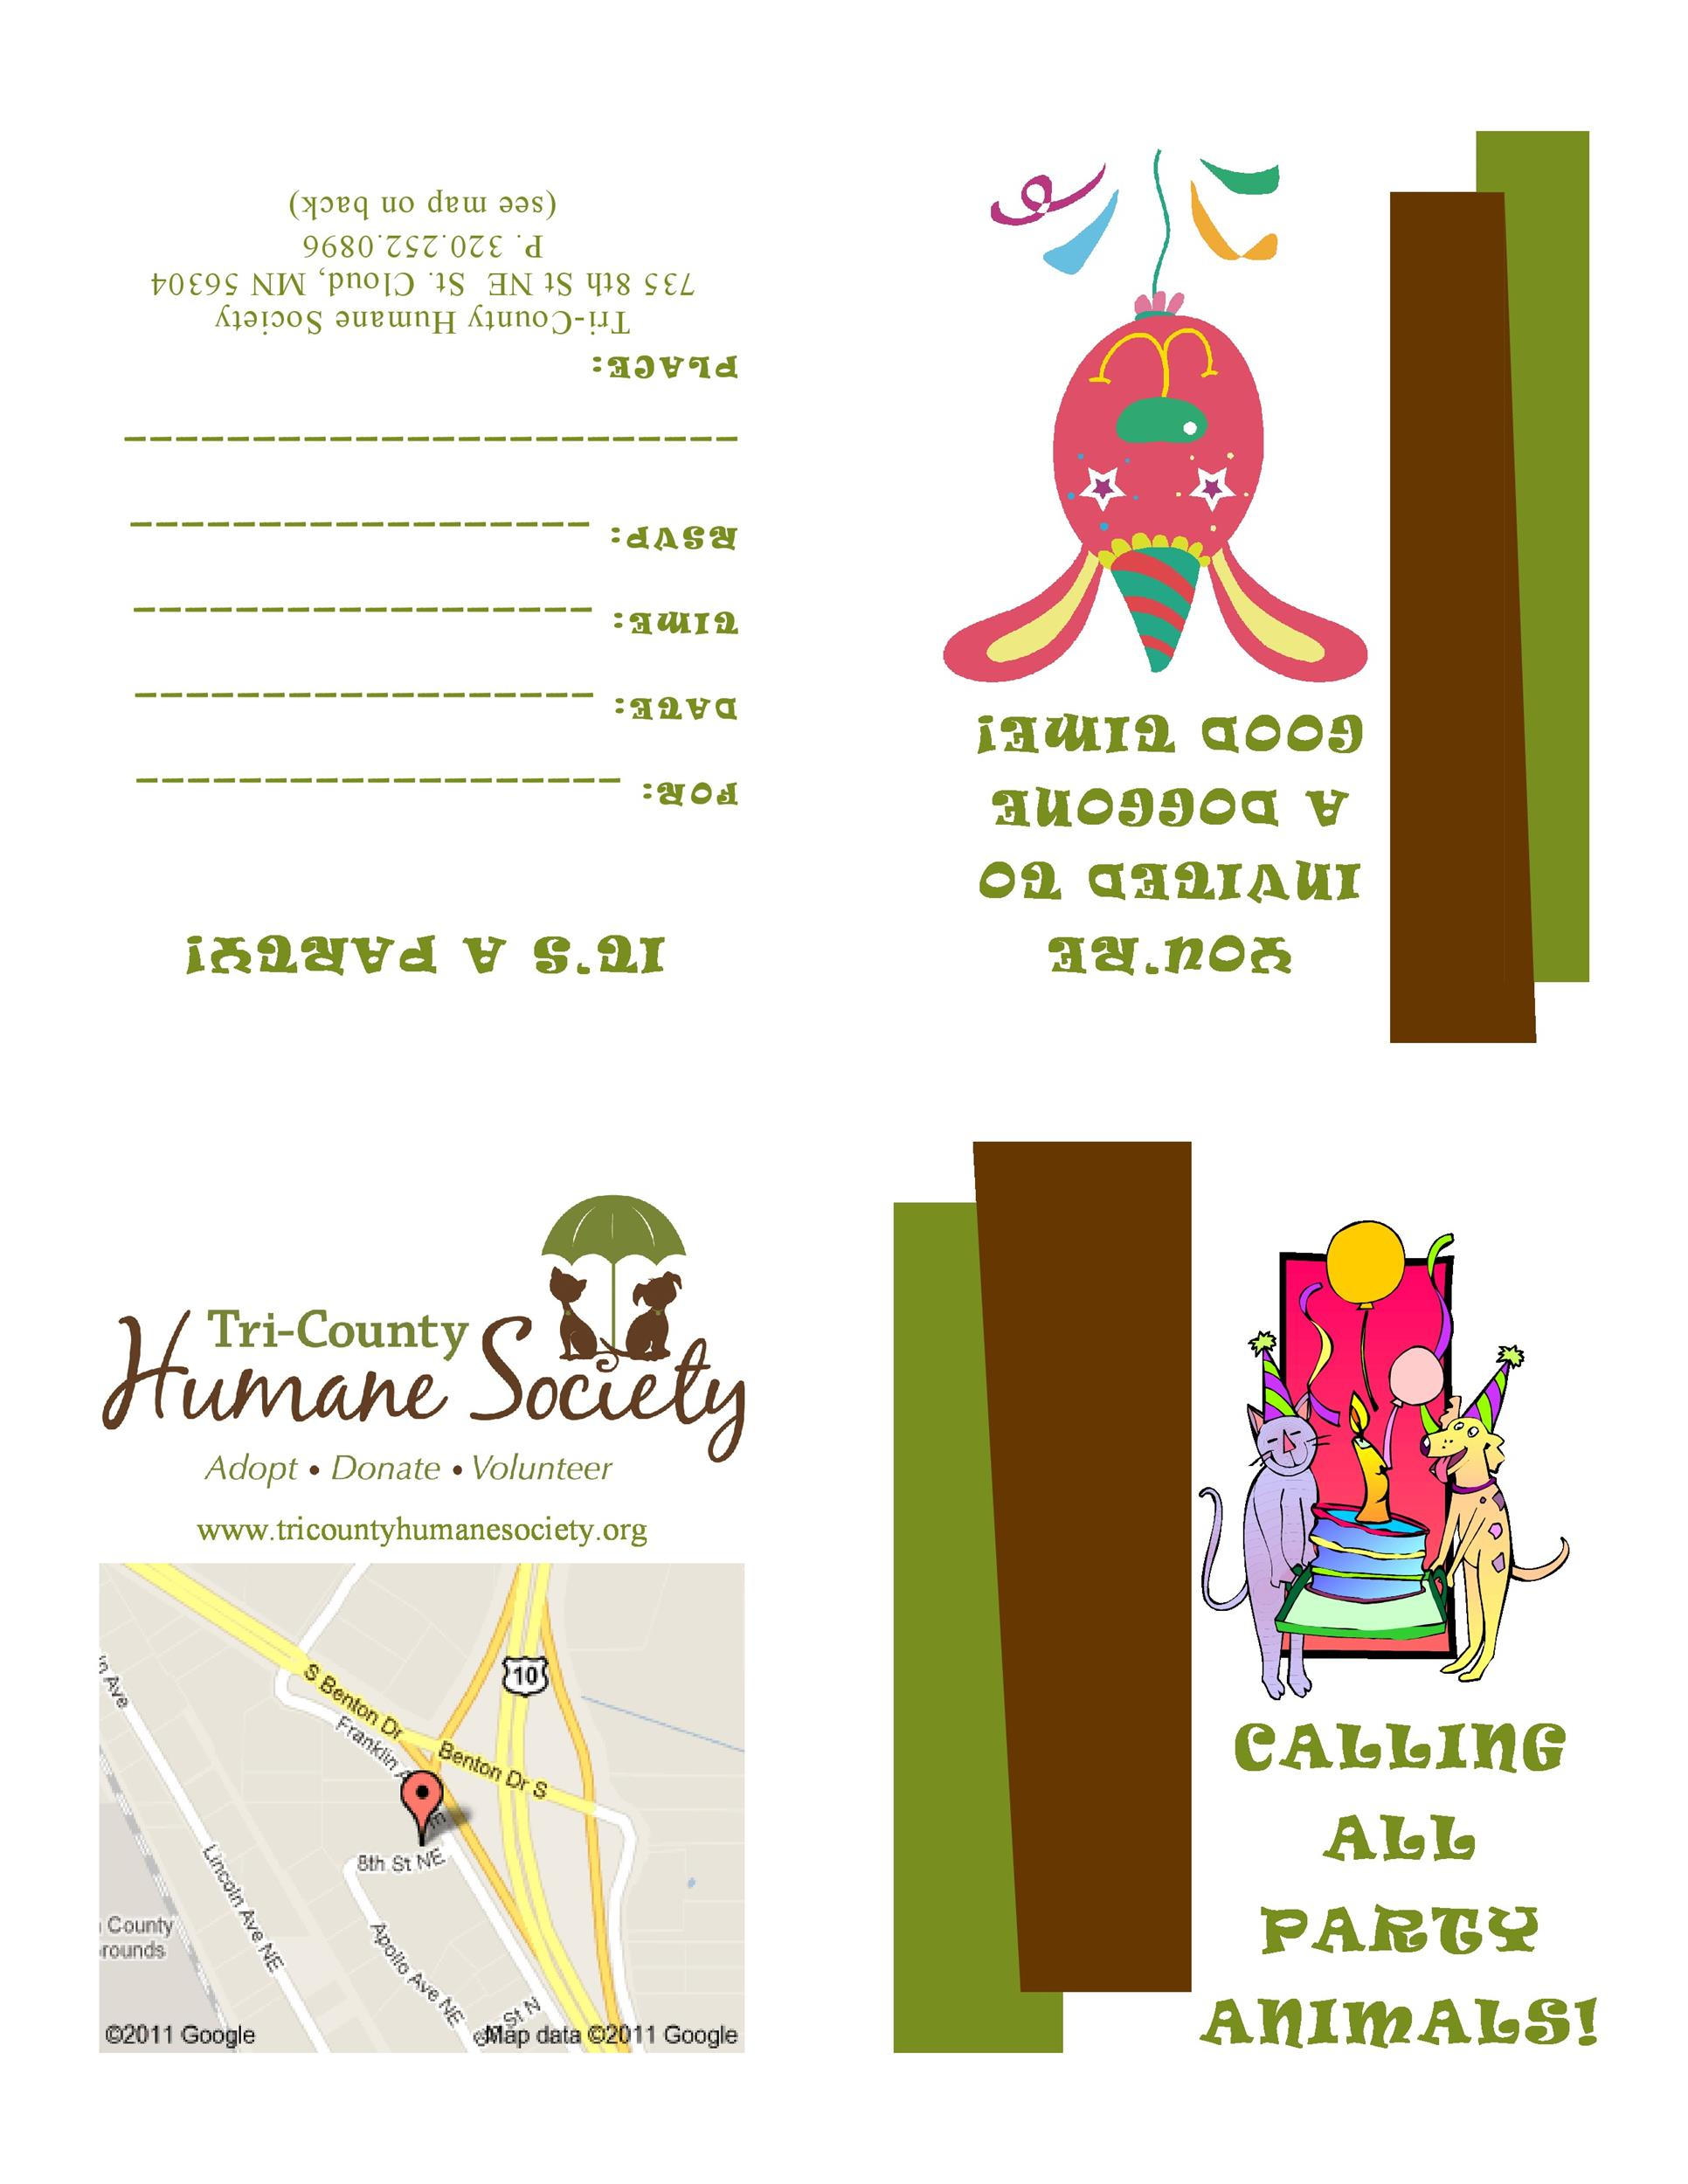 40+ Free Birthday Party Invitation Templates - Template Lab - free party invitation templates